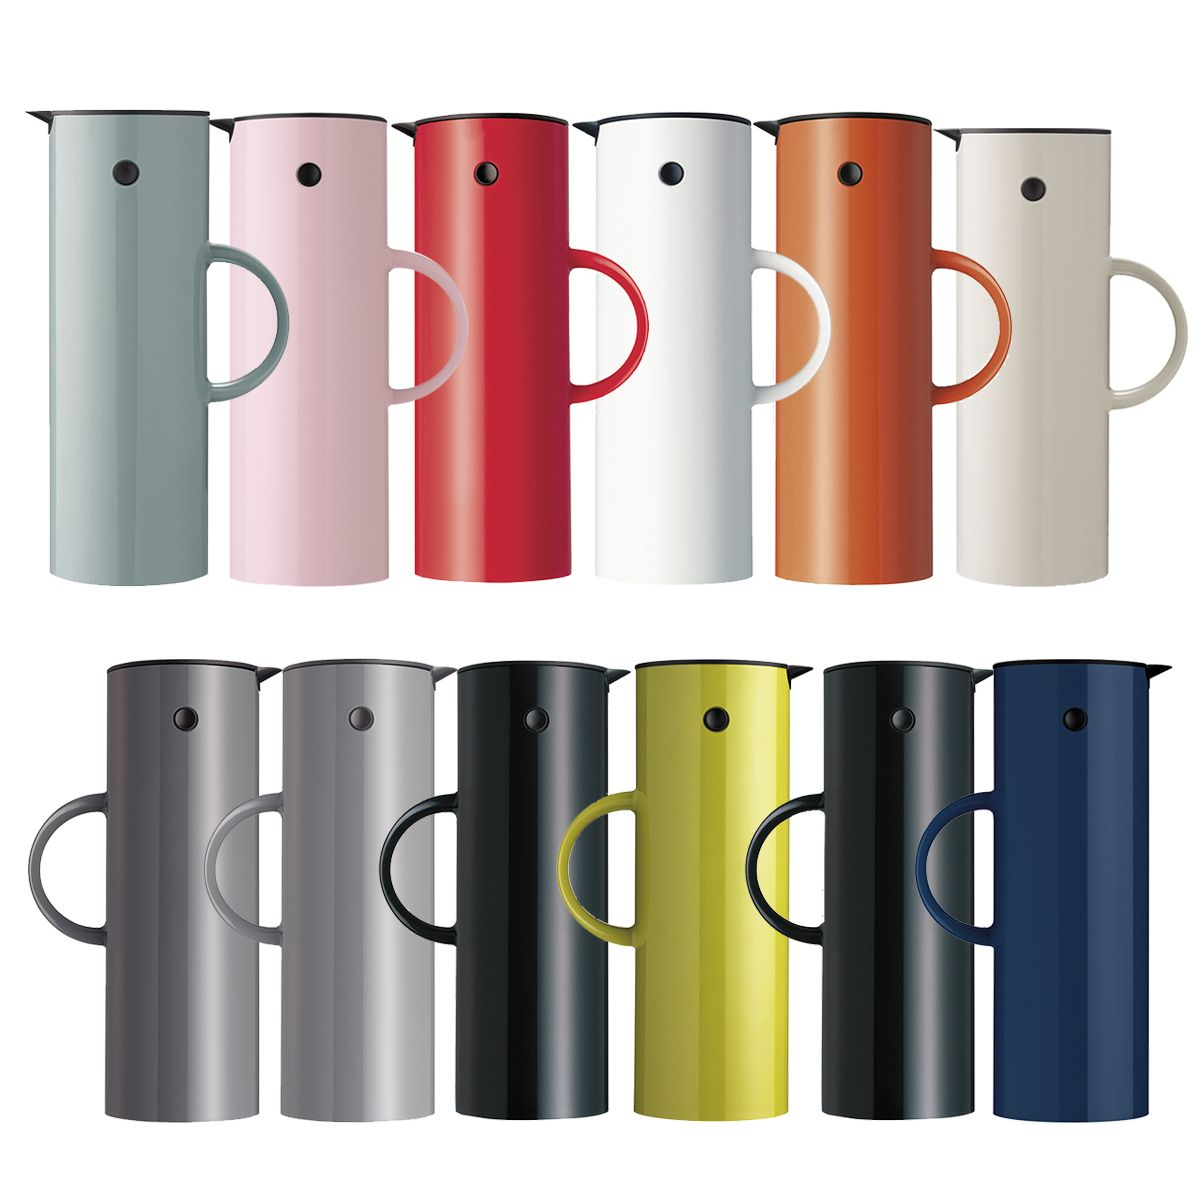 Classic Classic Features Designs Inspired By The Cylindrical Shape Like The Em77 Coffee Vacuum Jug By Erik Magnussen Elegant Stelton Selling Design Vacuums